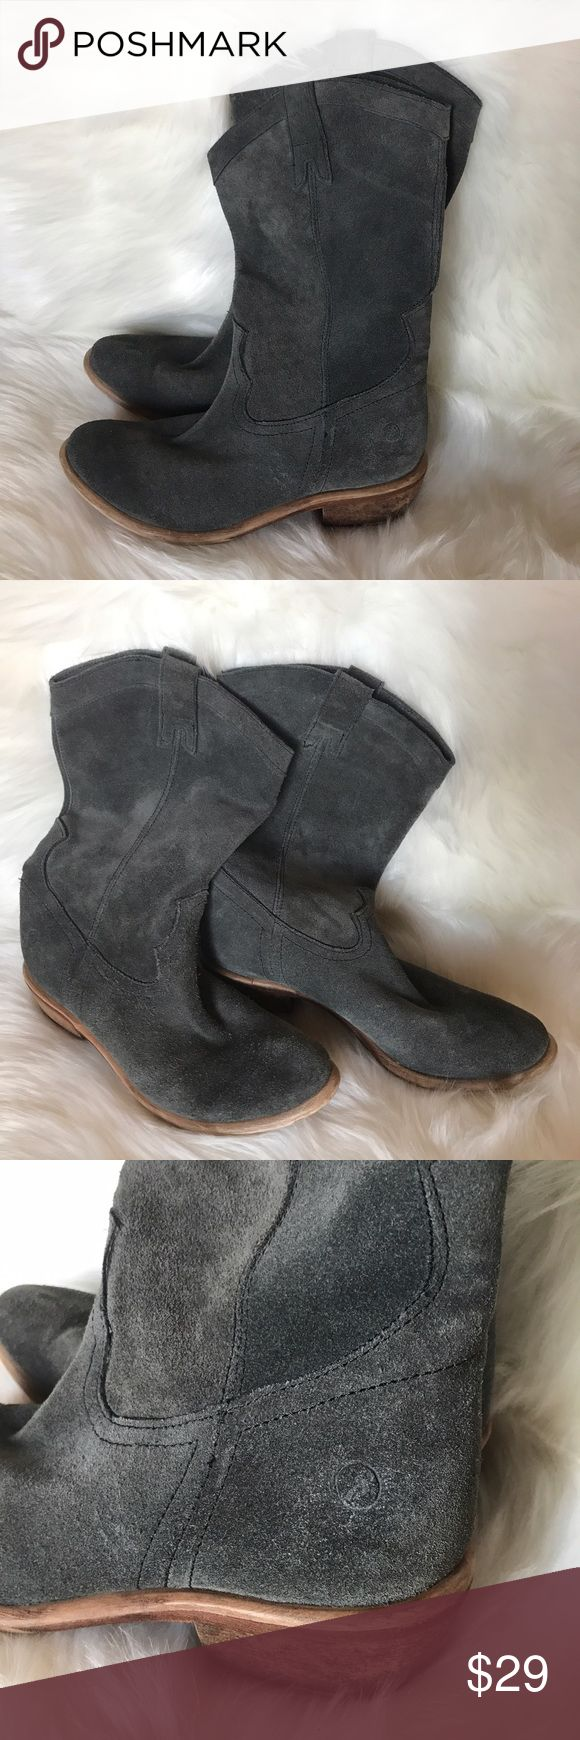 Bronx Gray Suede Western Tall Boots Rustic Country Bronx boots, style name might be Linus but I don't remember for sure. Almond shaped toe. Western style accents. Pull-on Boot strap tabs. Low light brown tan heel. These are amazing quality, super soft gray suede. Real wood heel. Bronx logo stamped on both heels. Very good preowned condition, normal signs of minimal wear. Overall height is 12.5 in included bootstraps. Rustic country style, but the gray gives it a modern twist. Bundle for a…